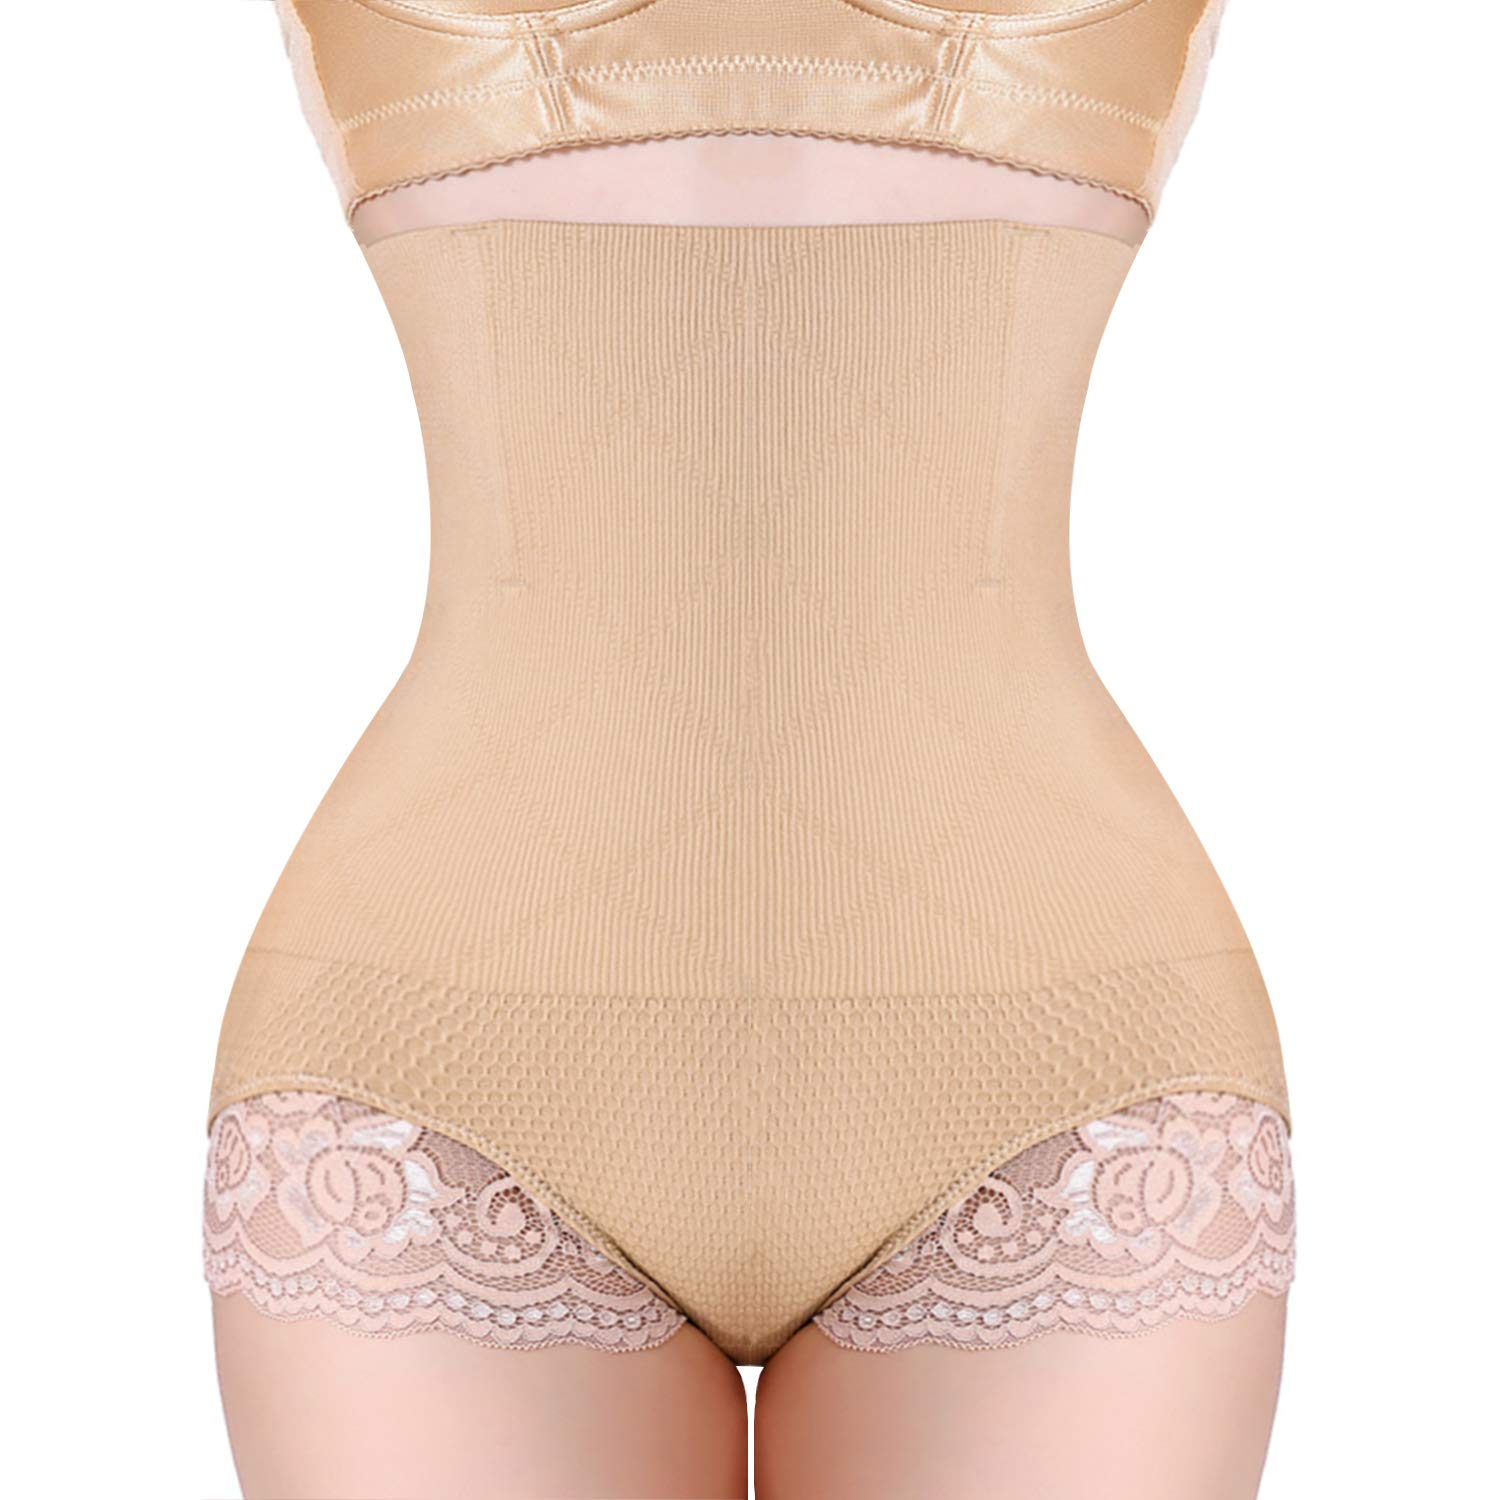 37ad97ee30 Nimiah Tummy Control Panty Body Shaper High Waist Cincher Slim Butt Lifter  Seamless Waist Trainer at Amazon Women s Clothing store